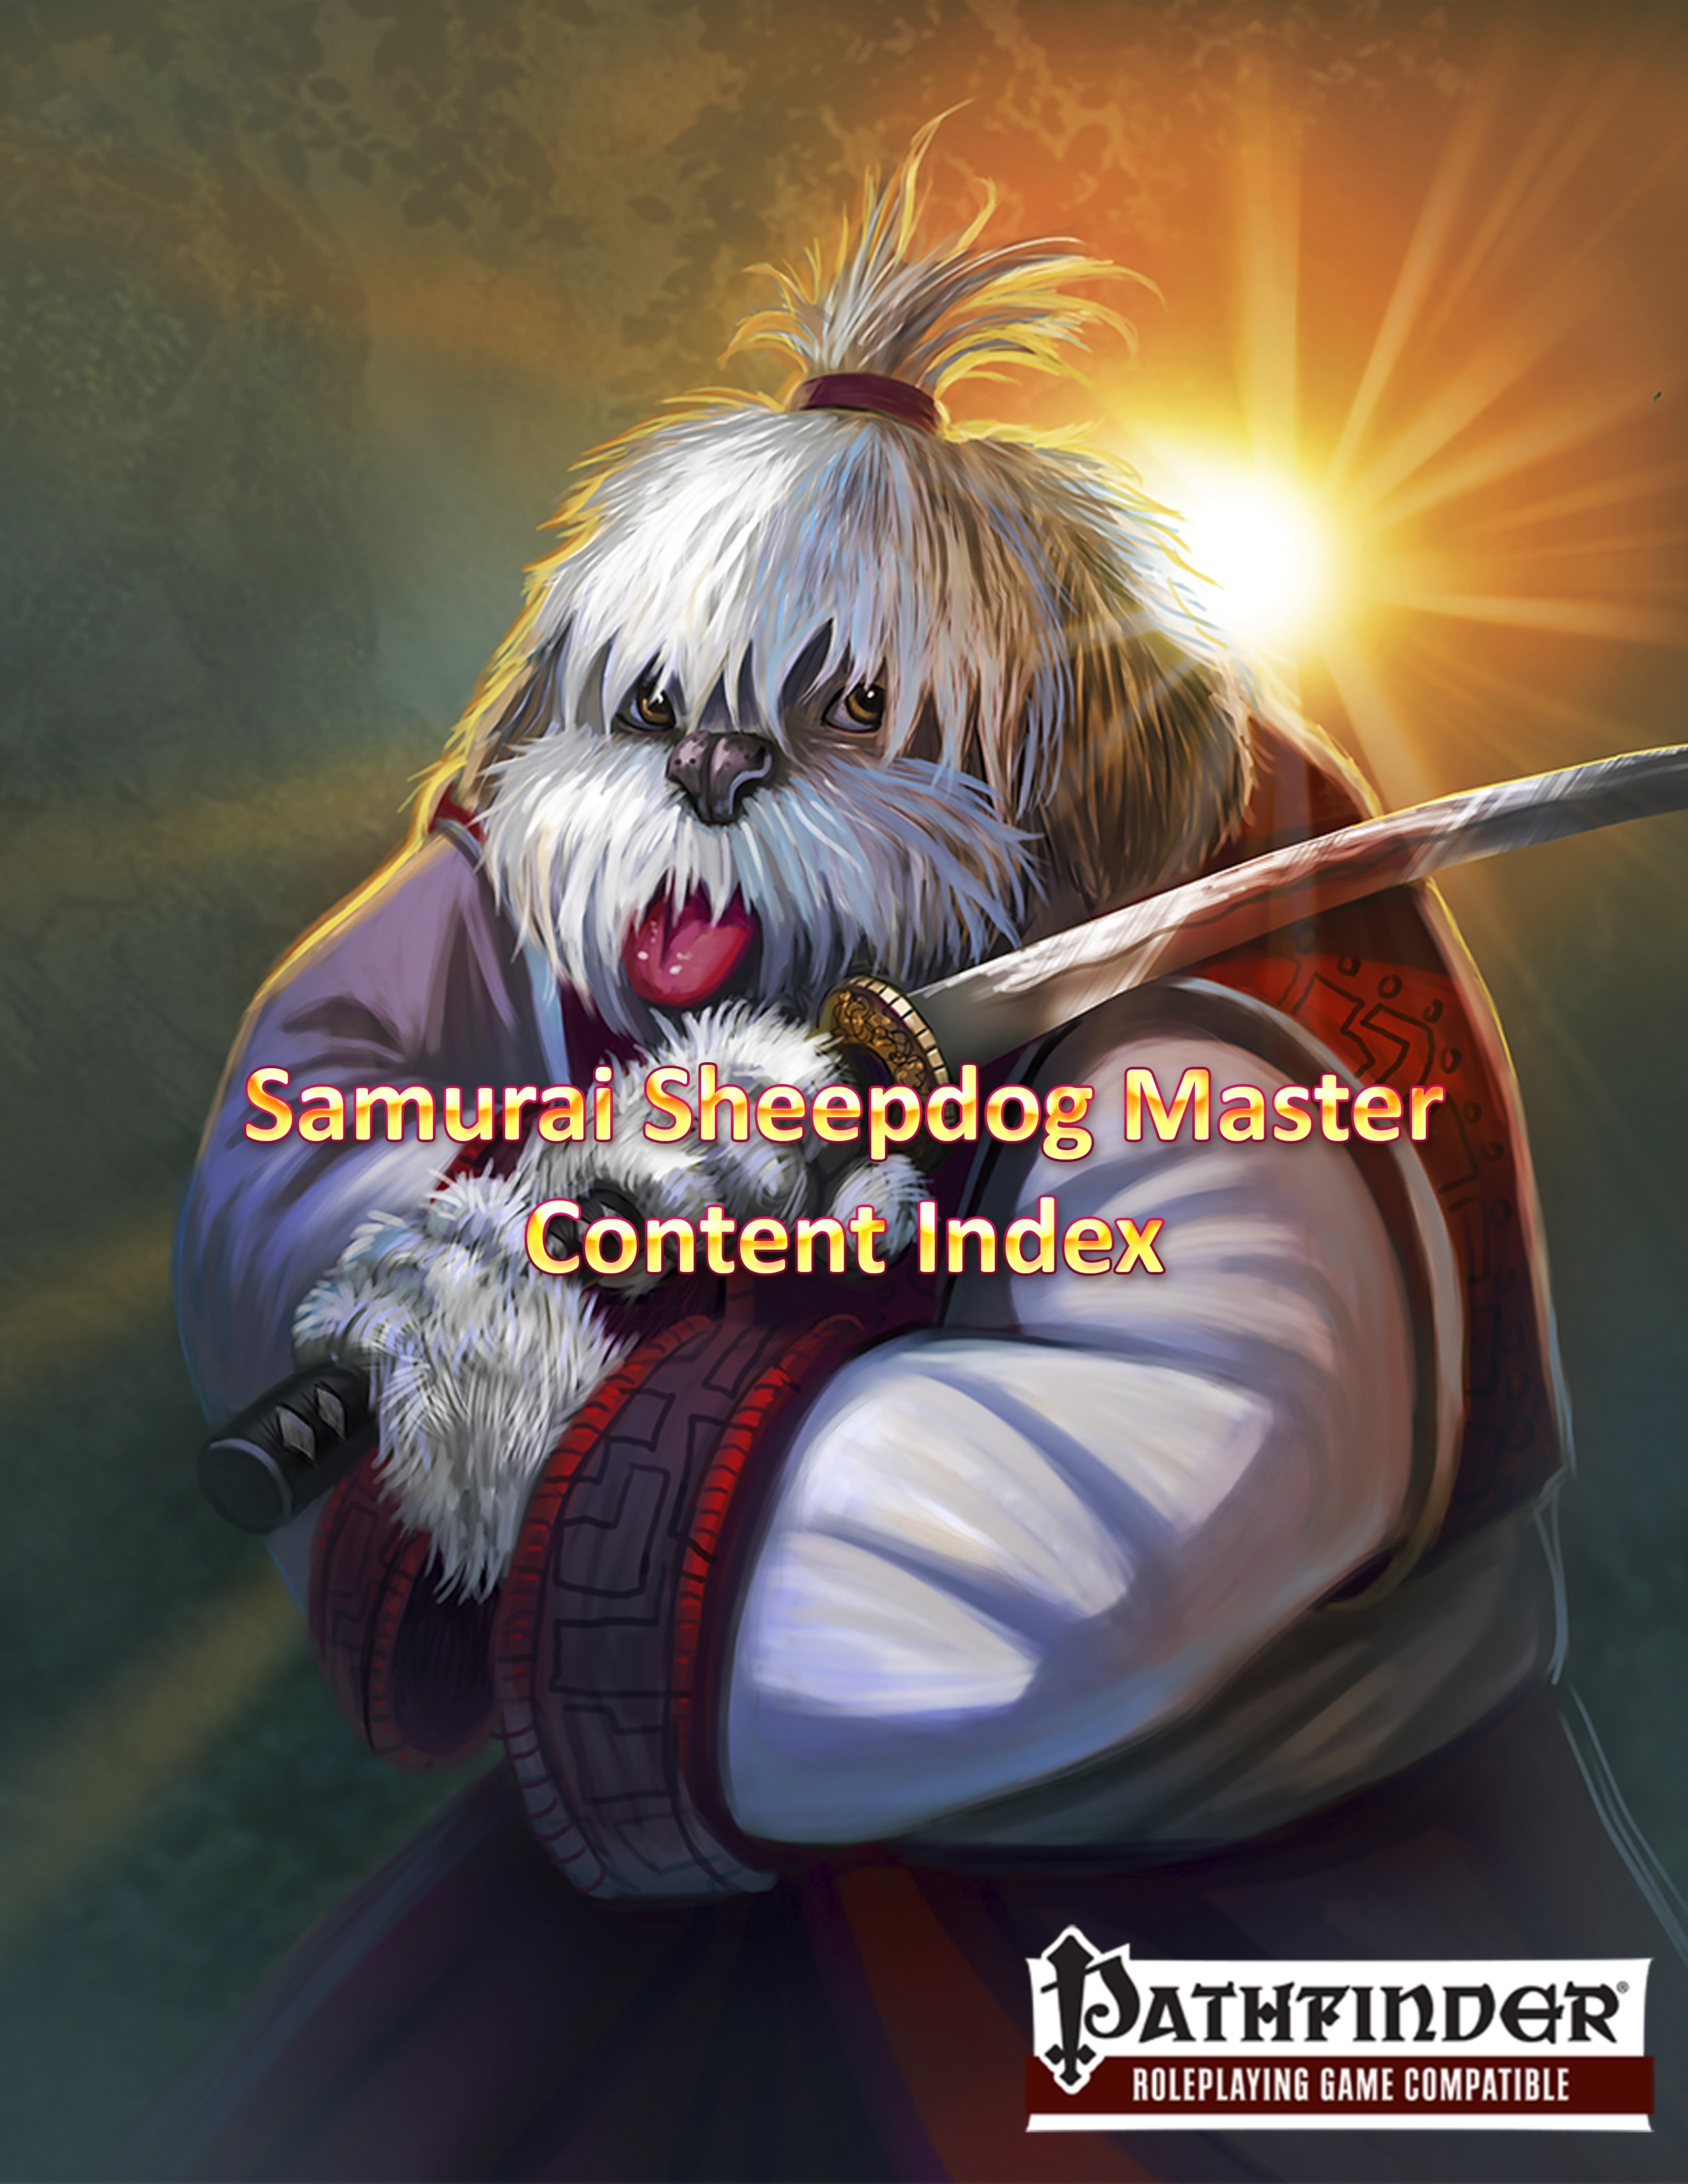 paizo com - The Book of Many Things: Master Content Index PDF